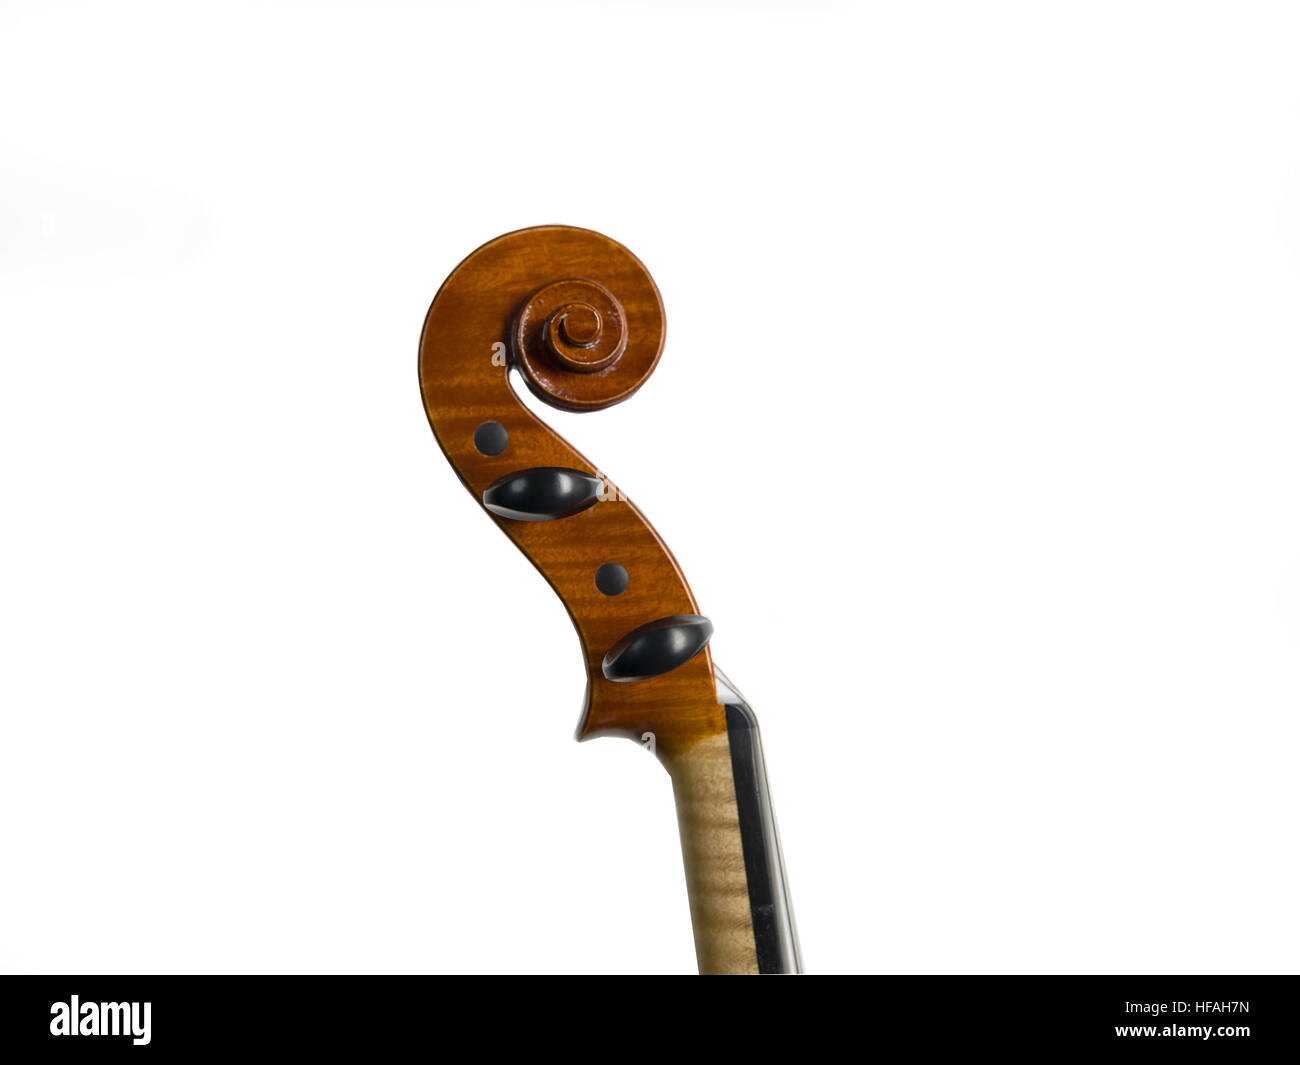 Cremonese contemporary violin detail, head with curl - Stock Image